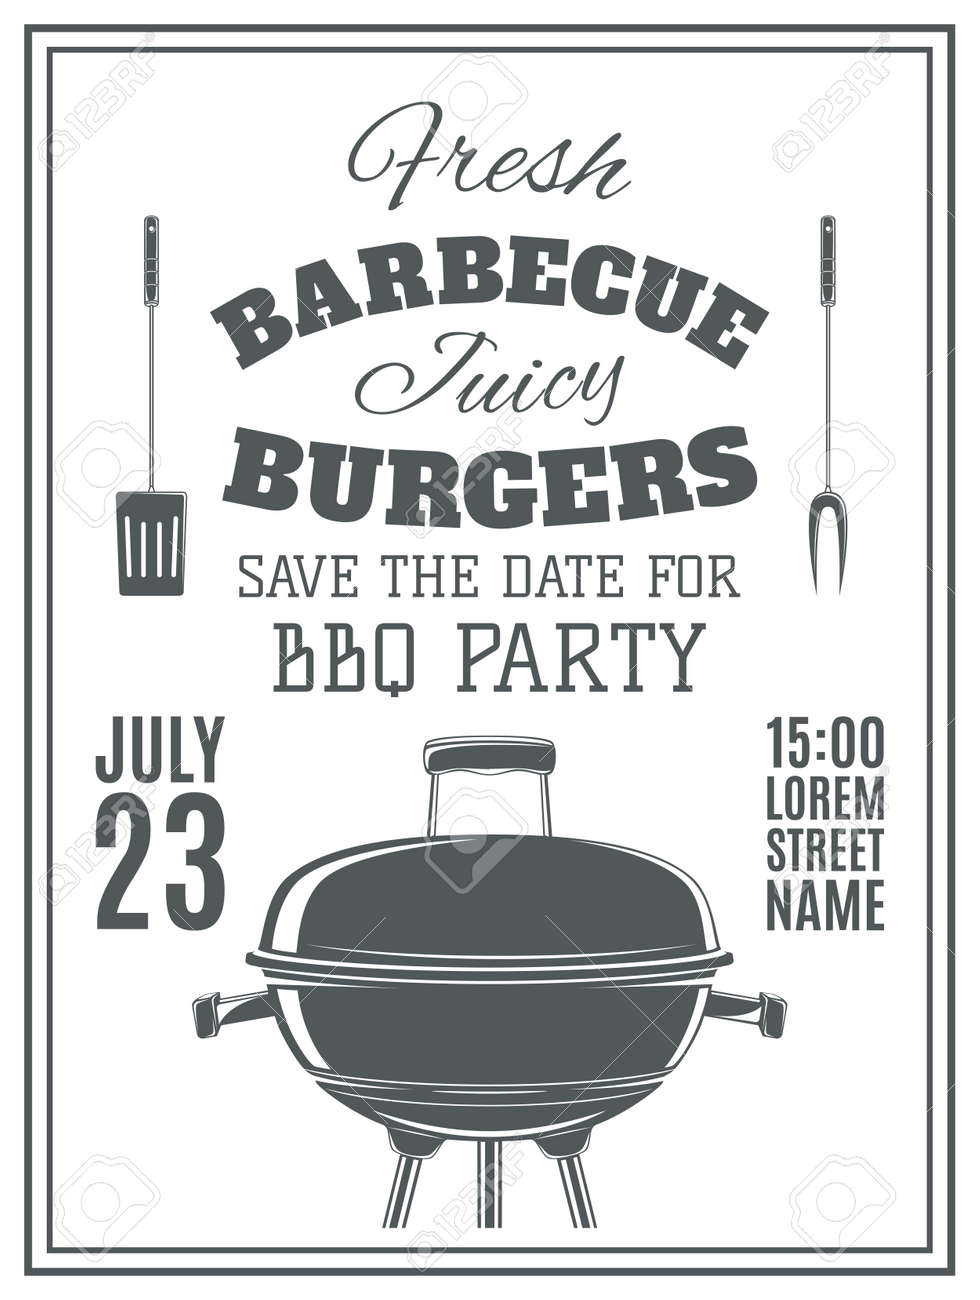 Weinlese Grill Party Einladung. BBQ Essen Flyer Vorlage.  Vektor Illustration.